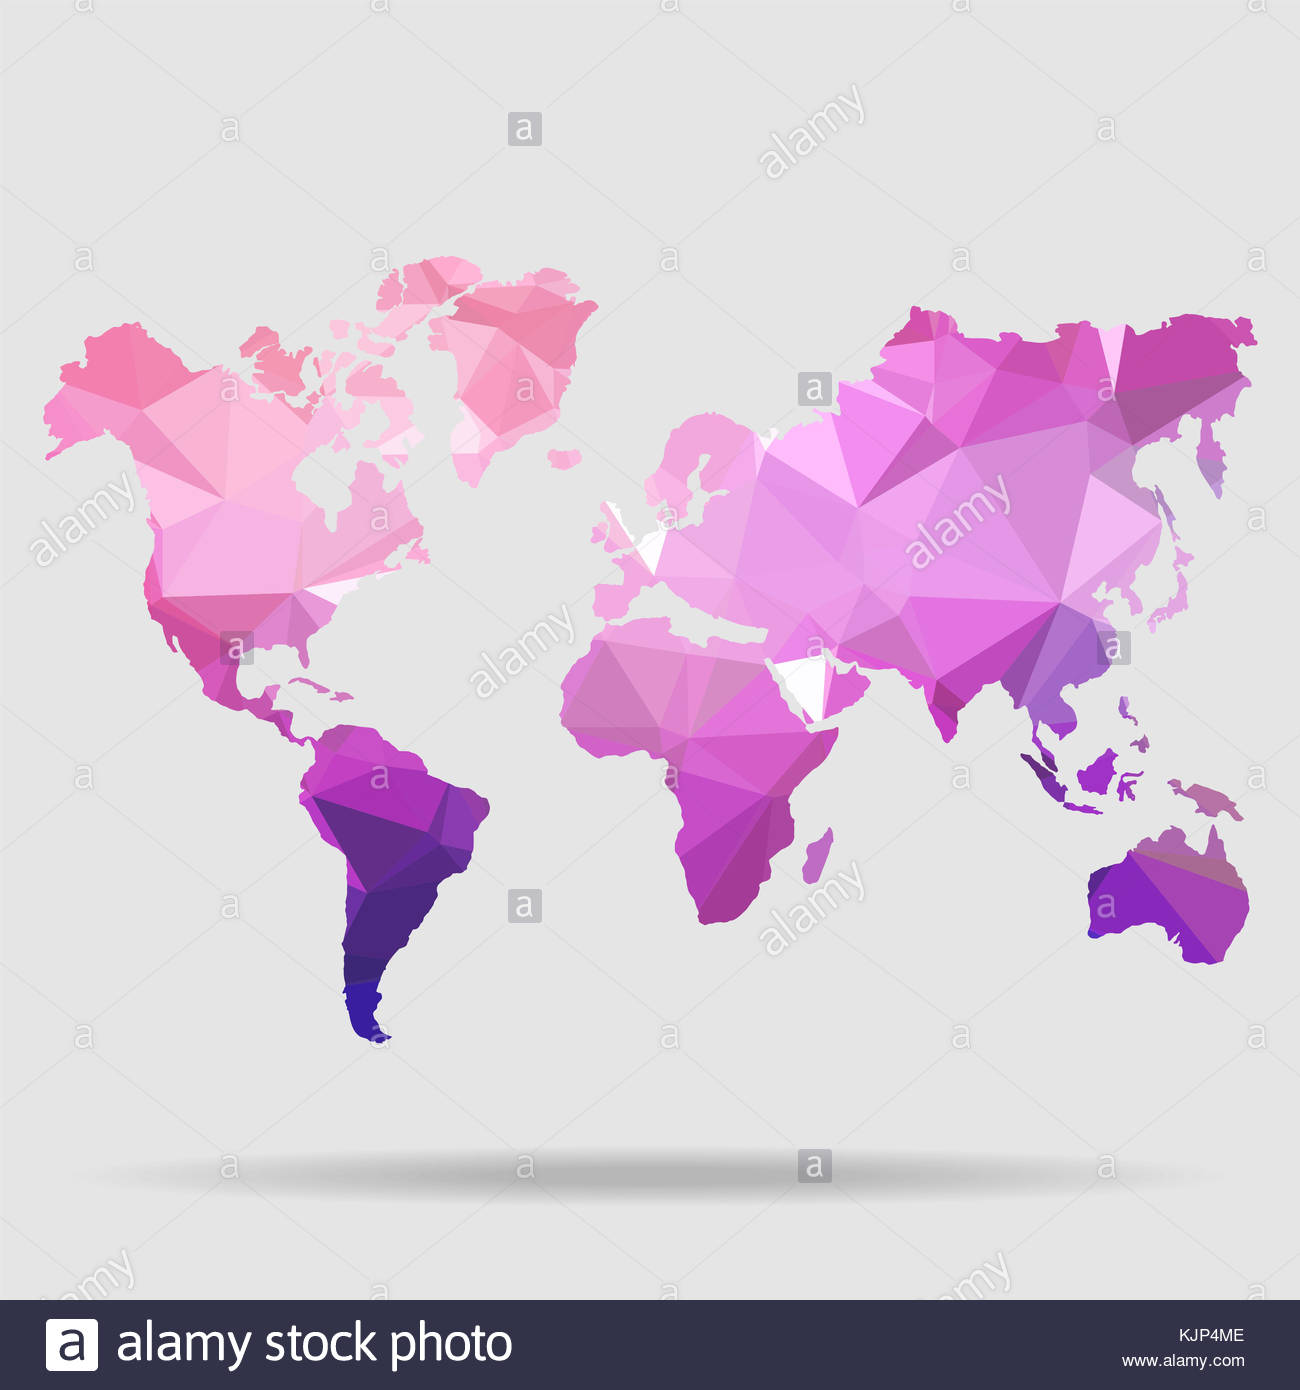 abstract world map vector illustration geometric structure in blue color for presentation booklet website and other design projects polygonal b